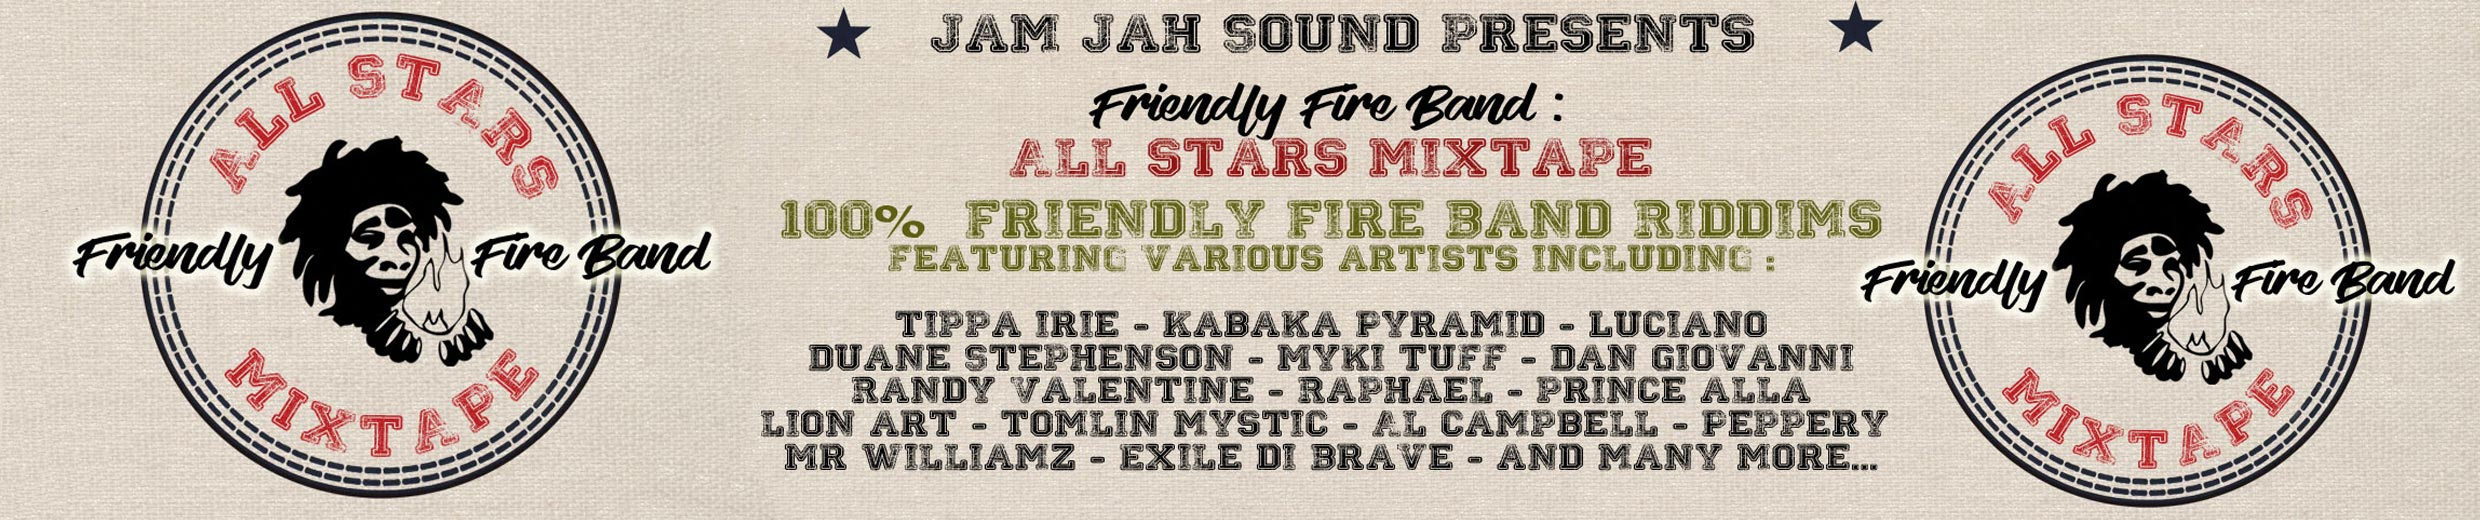 Jam Jah Presents Friendly Fire Band All Stars Mixtape